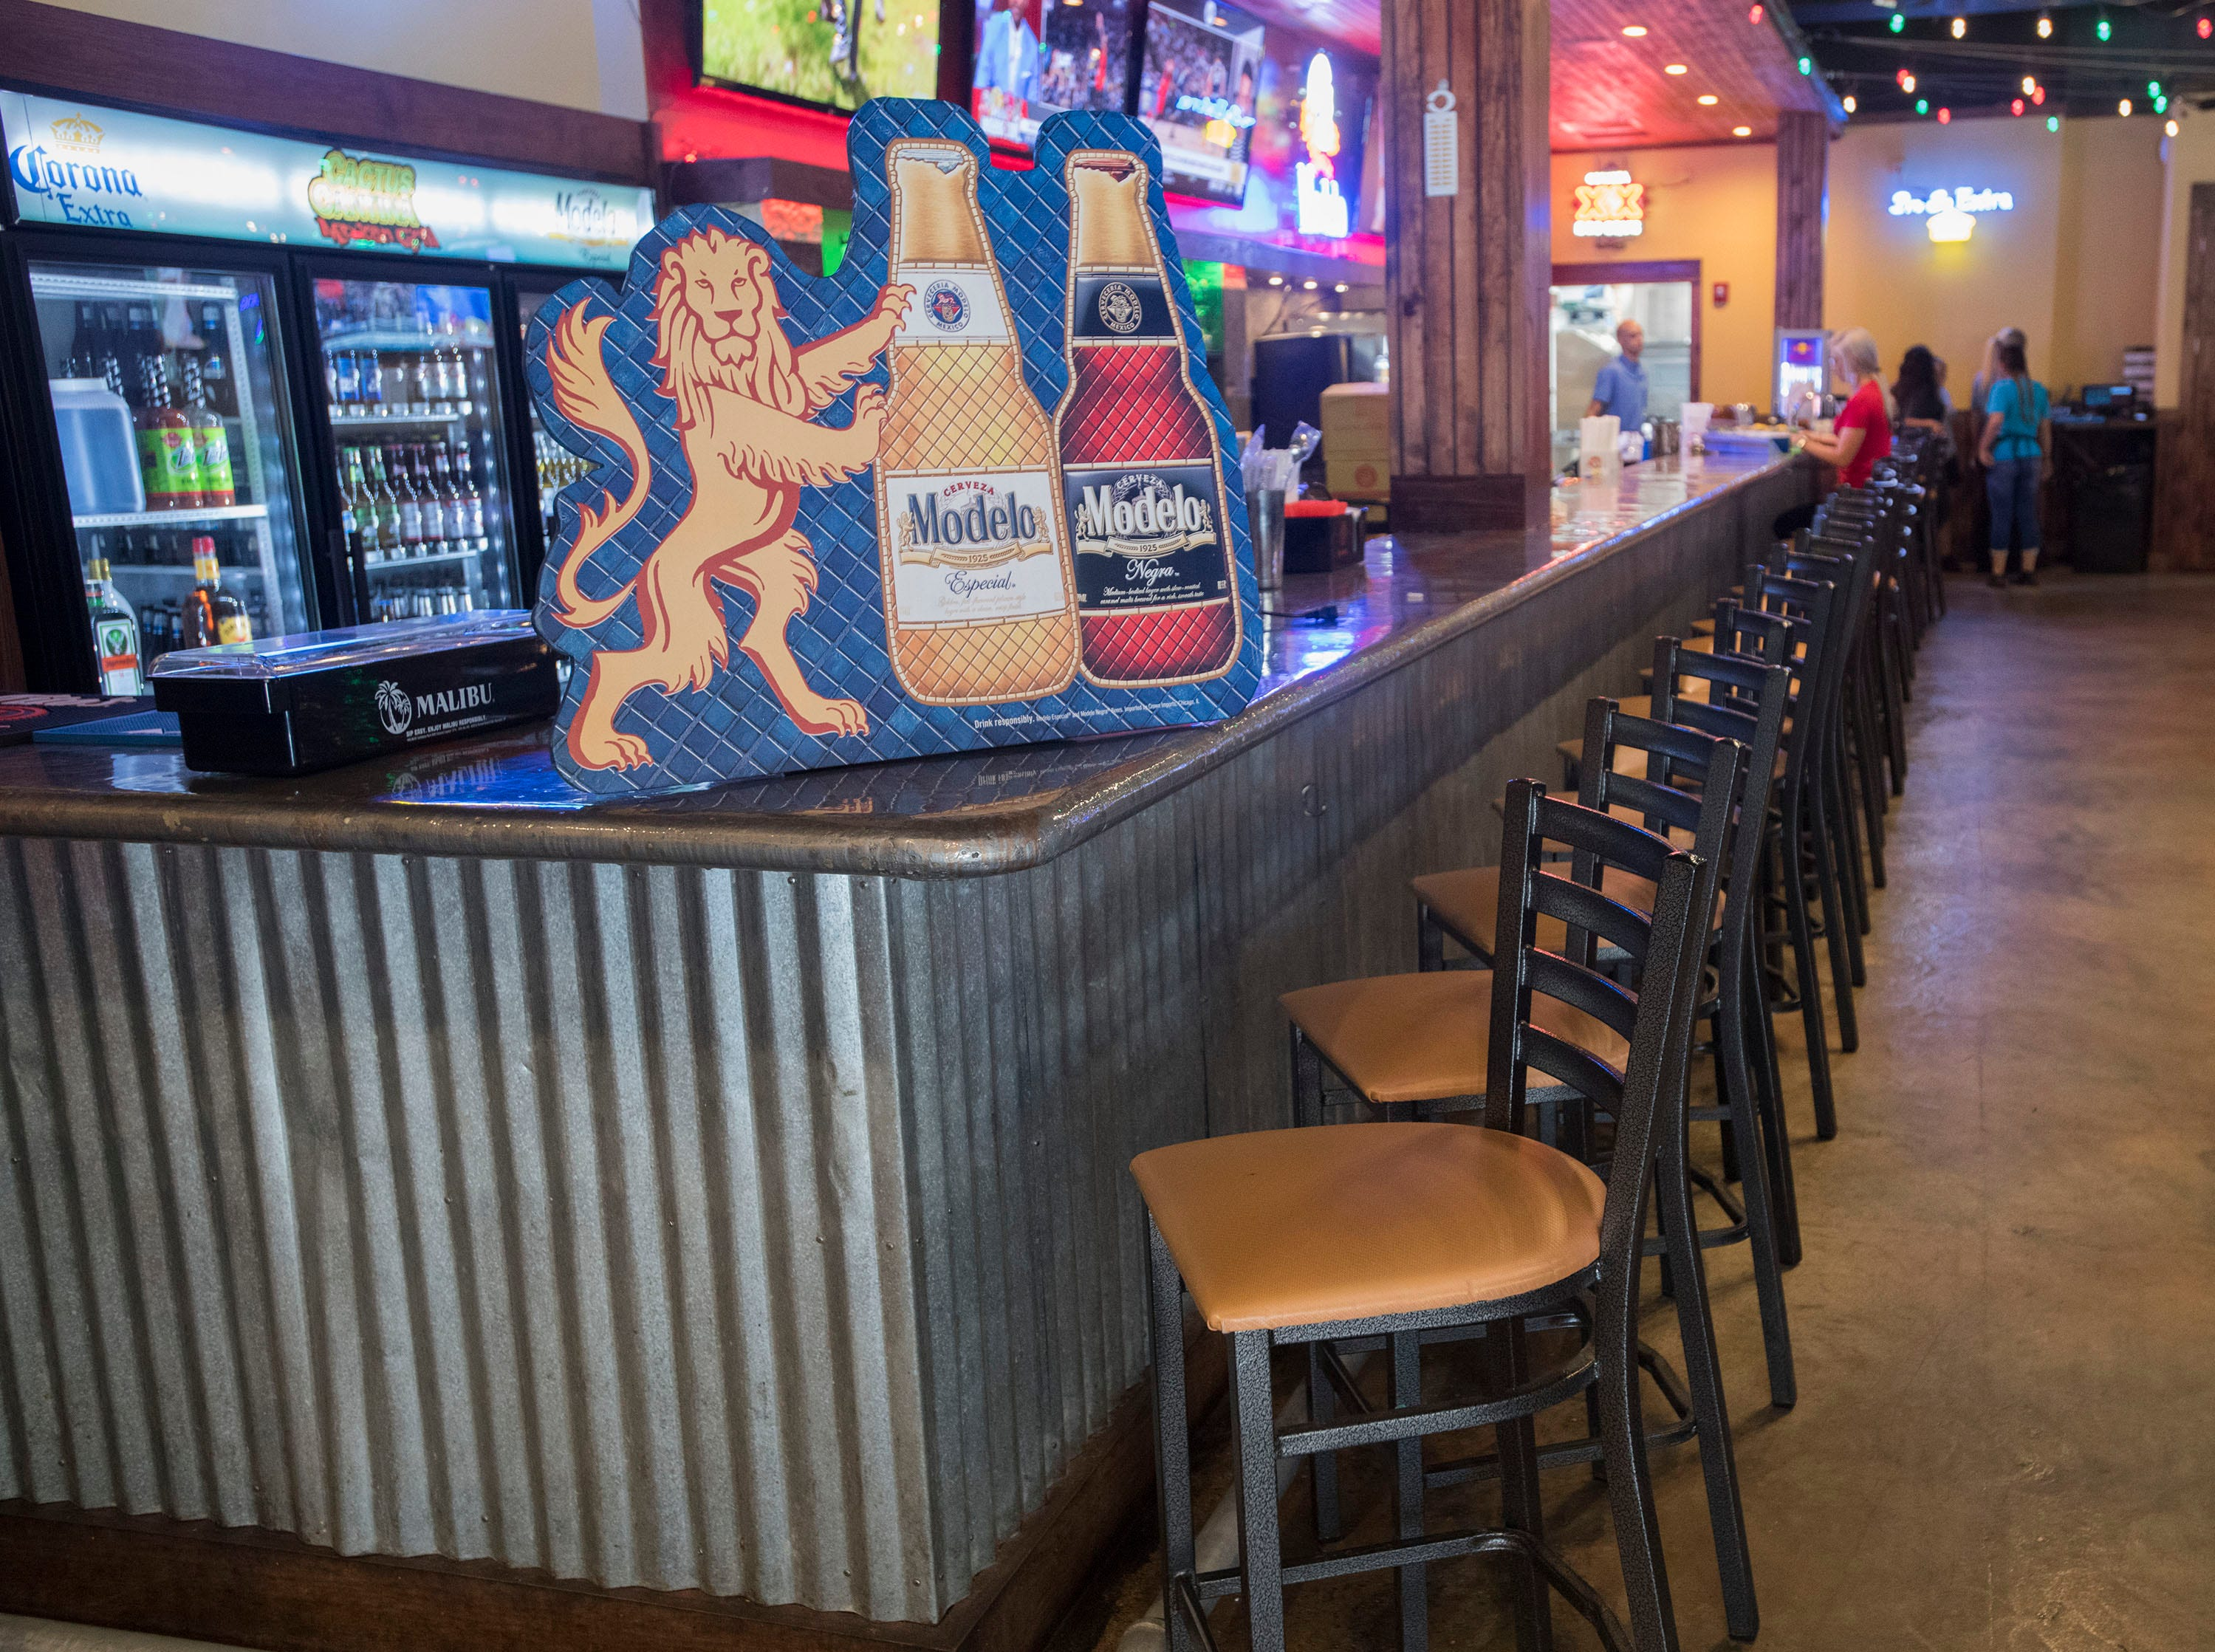 On Monday, May 13, 2019, the new Mexican restaurant, Cactus Cantina, is getting closer to opening for business. Cactus Cantina is located in the old Beef O'Brady's location on Palafox and is scheduled to open on Wednesday.